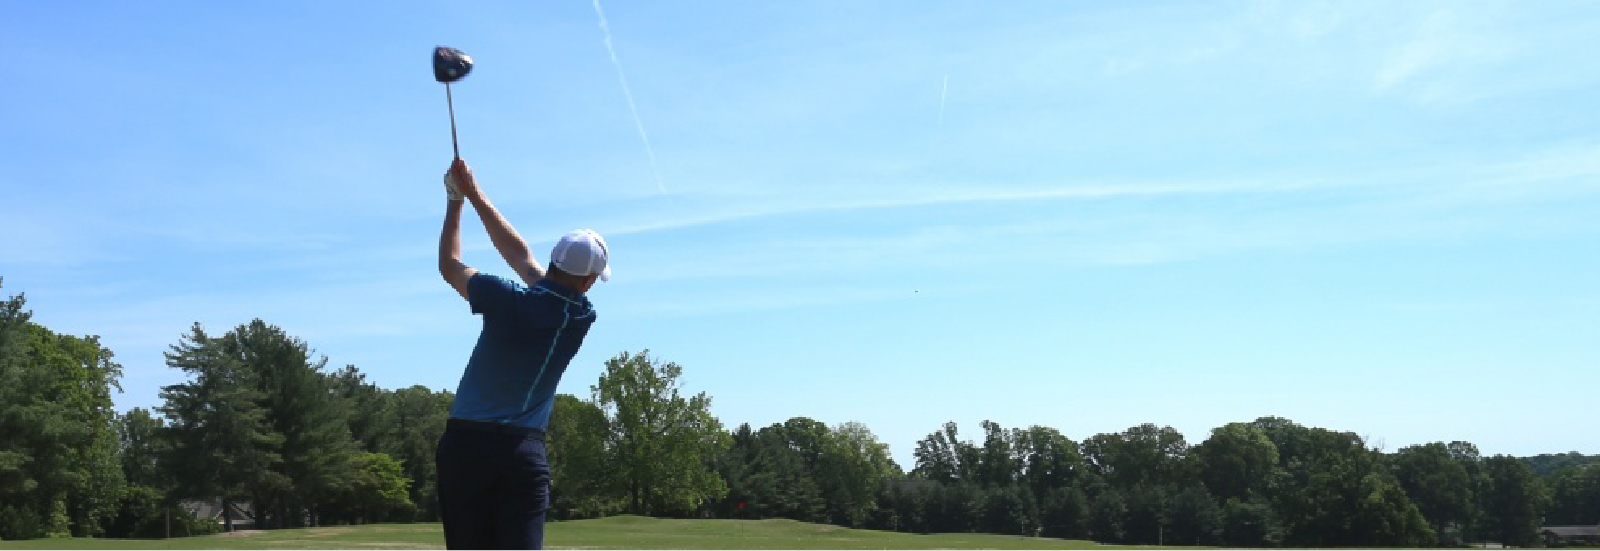 Things to Do Near Fort Campbell - Golfing